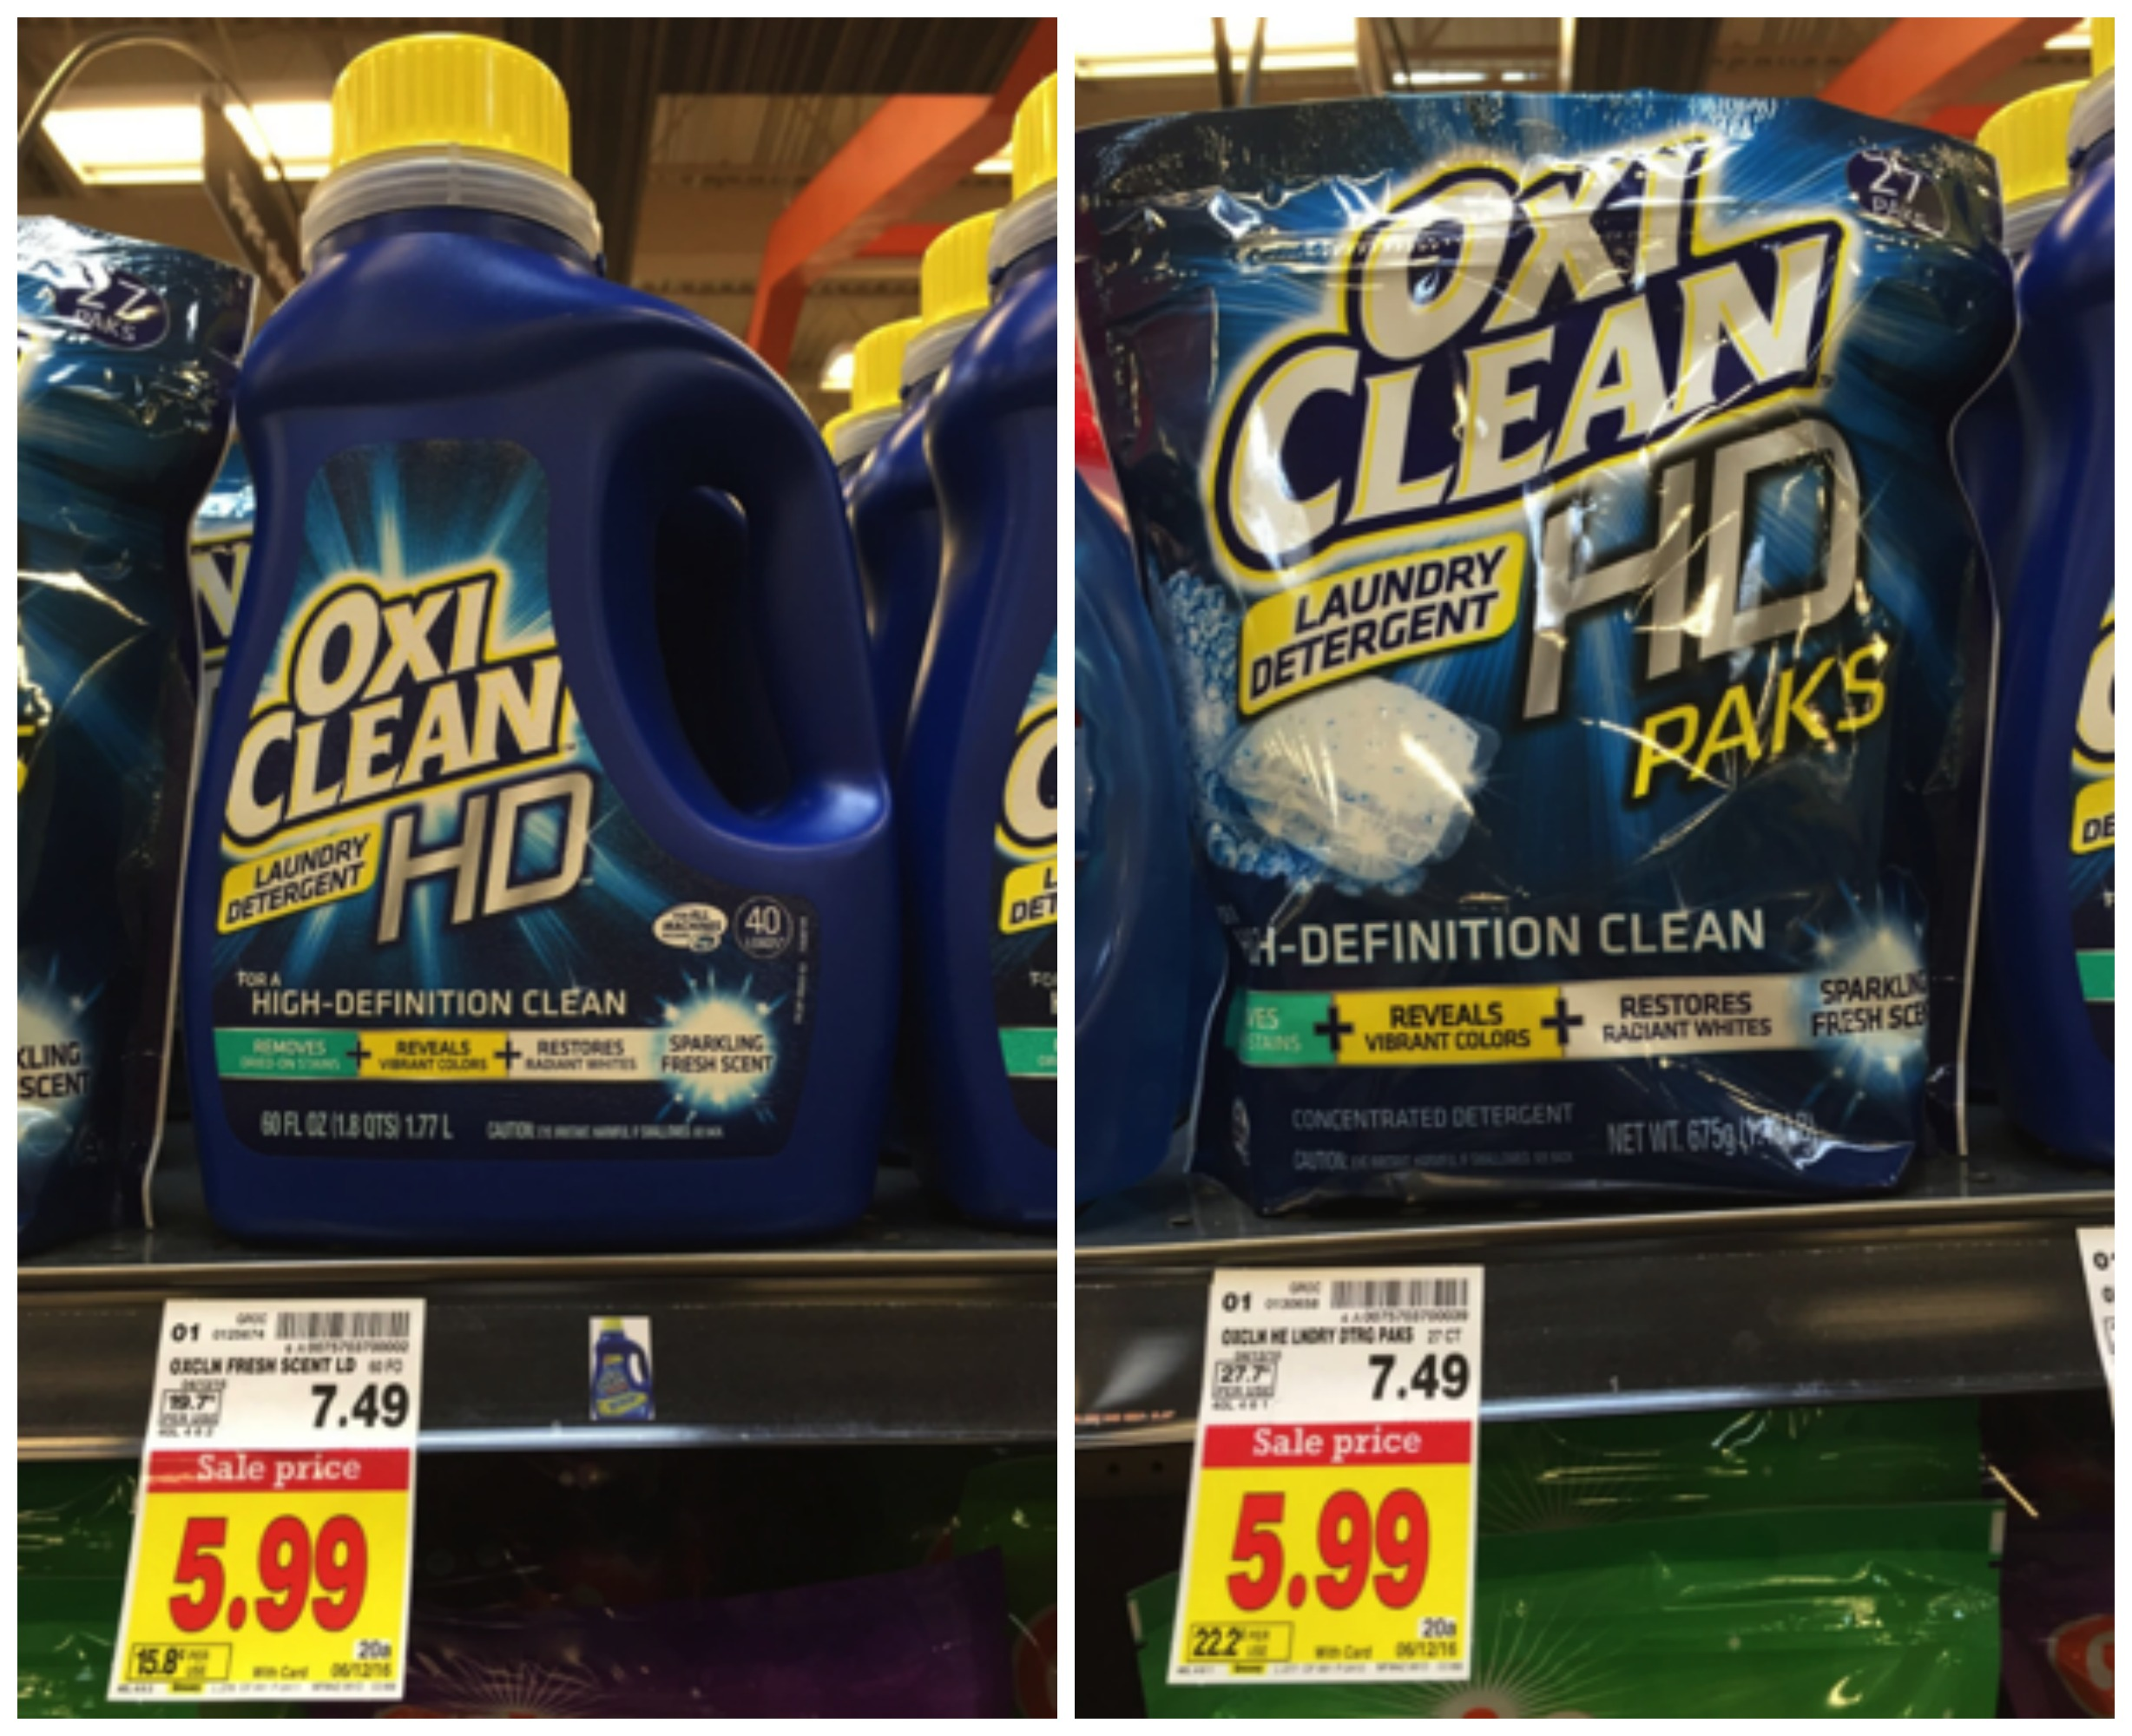 oxiclean HD collage